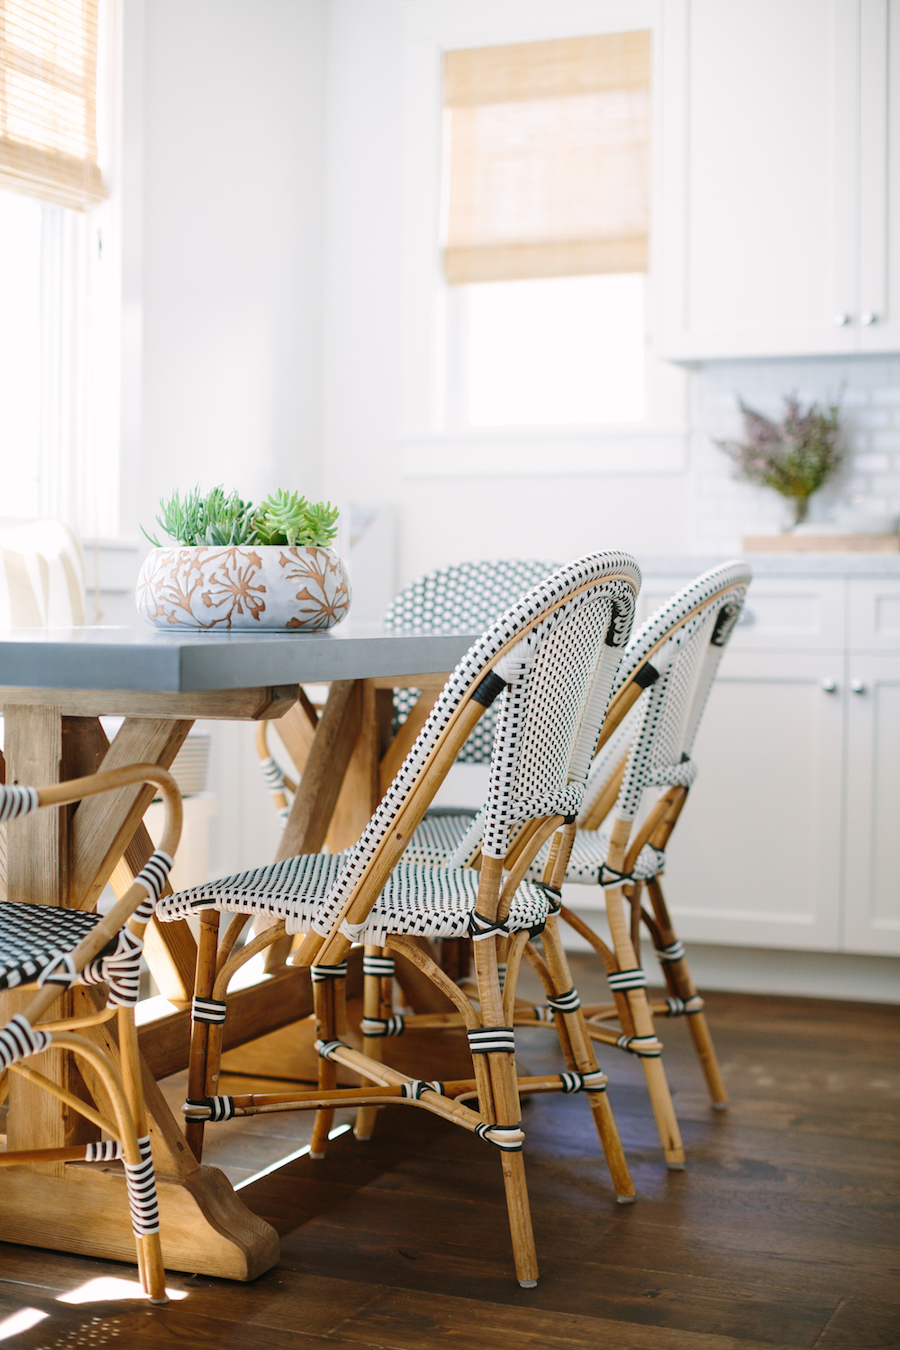 Bistro Chairs Dining Room via Rita Chan Interiors